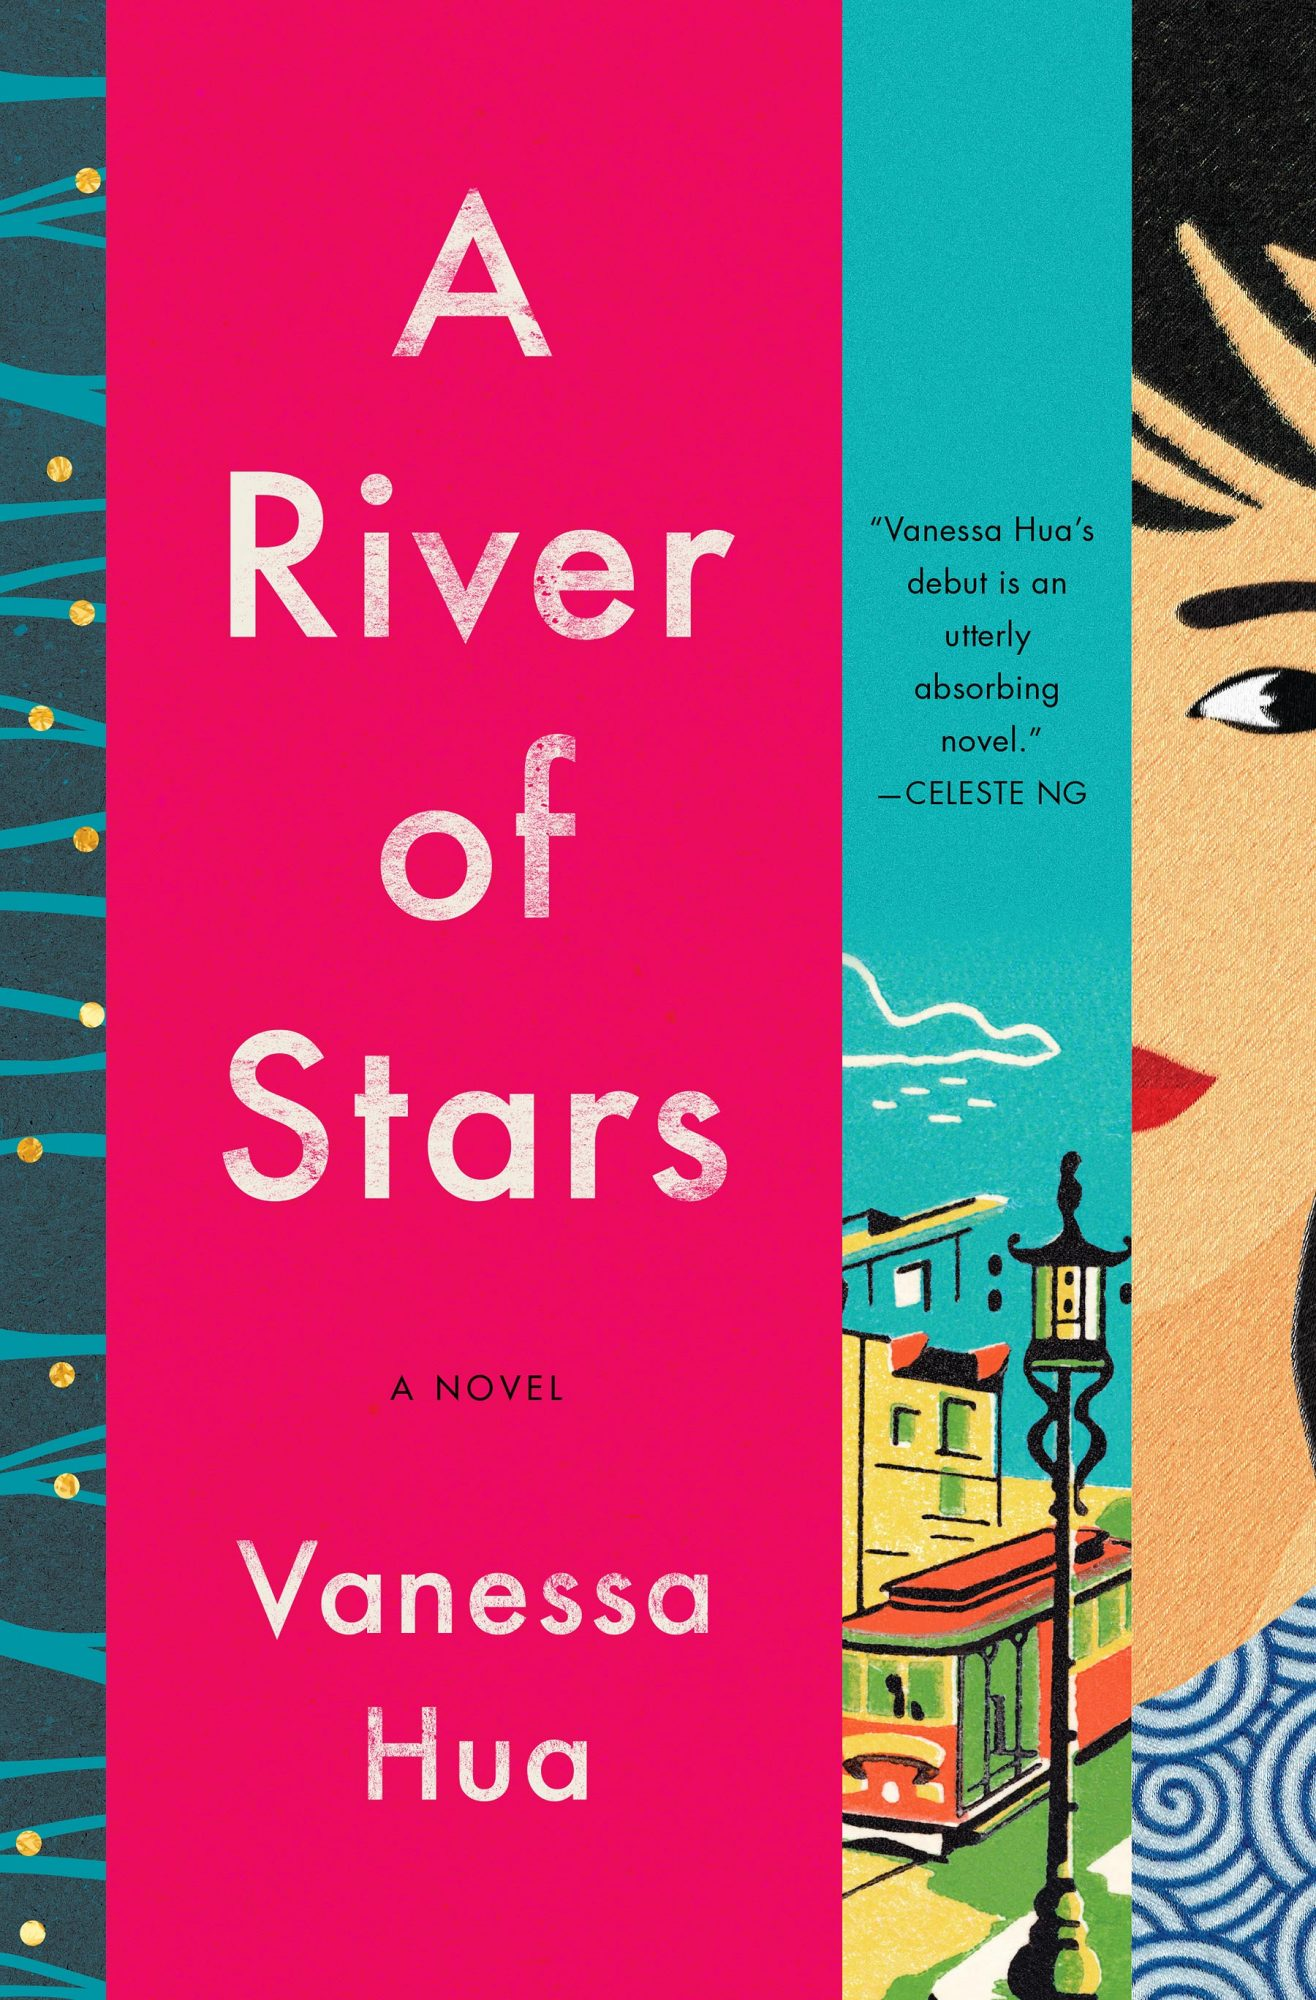 A River of Stars, by Vanessa Hua